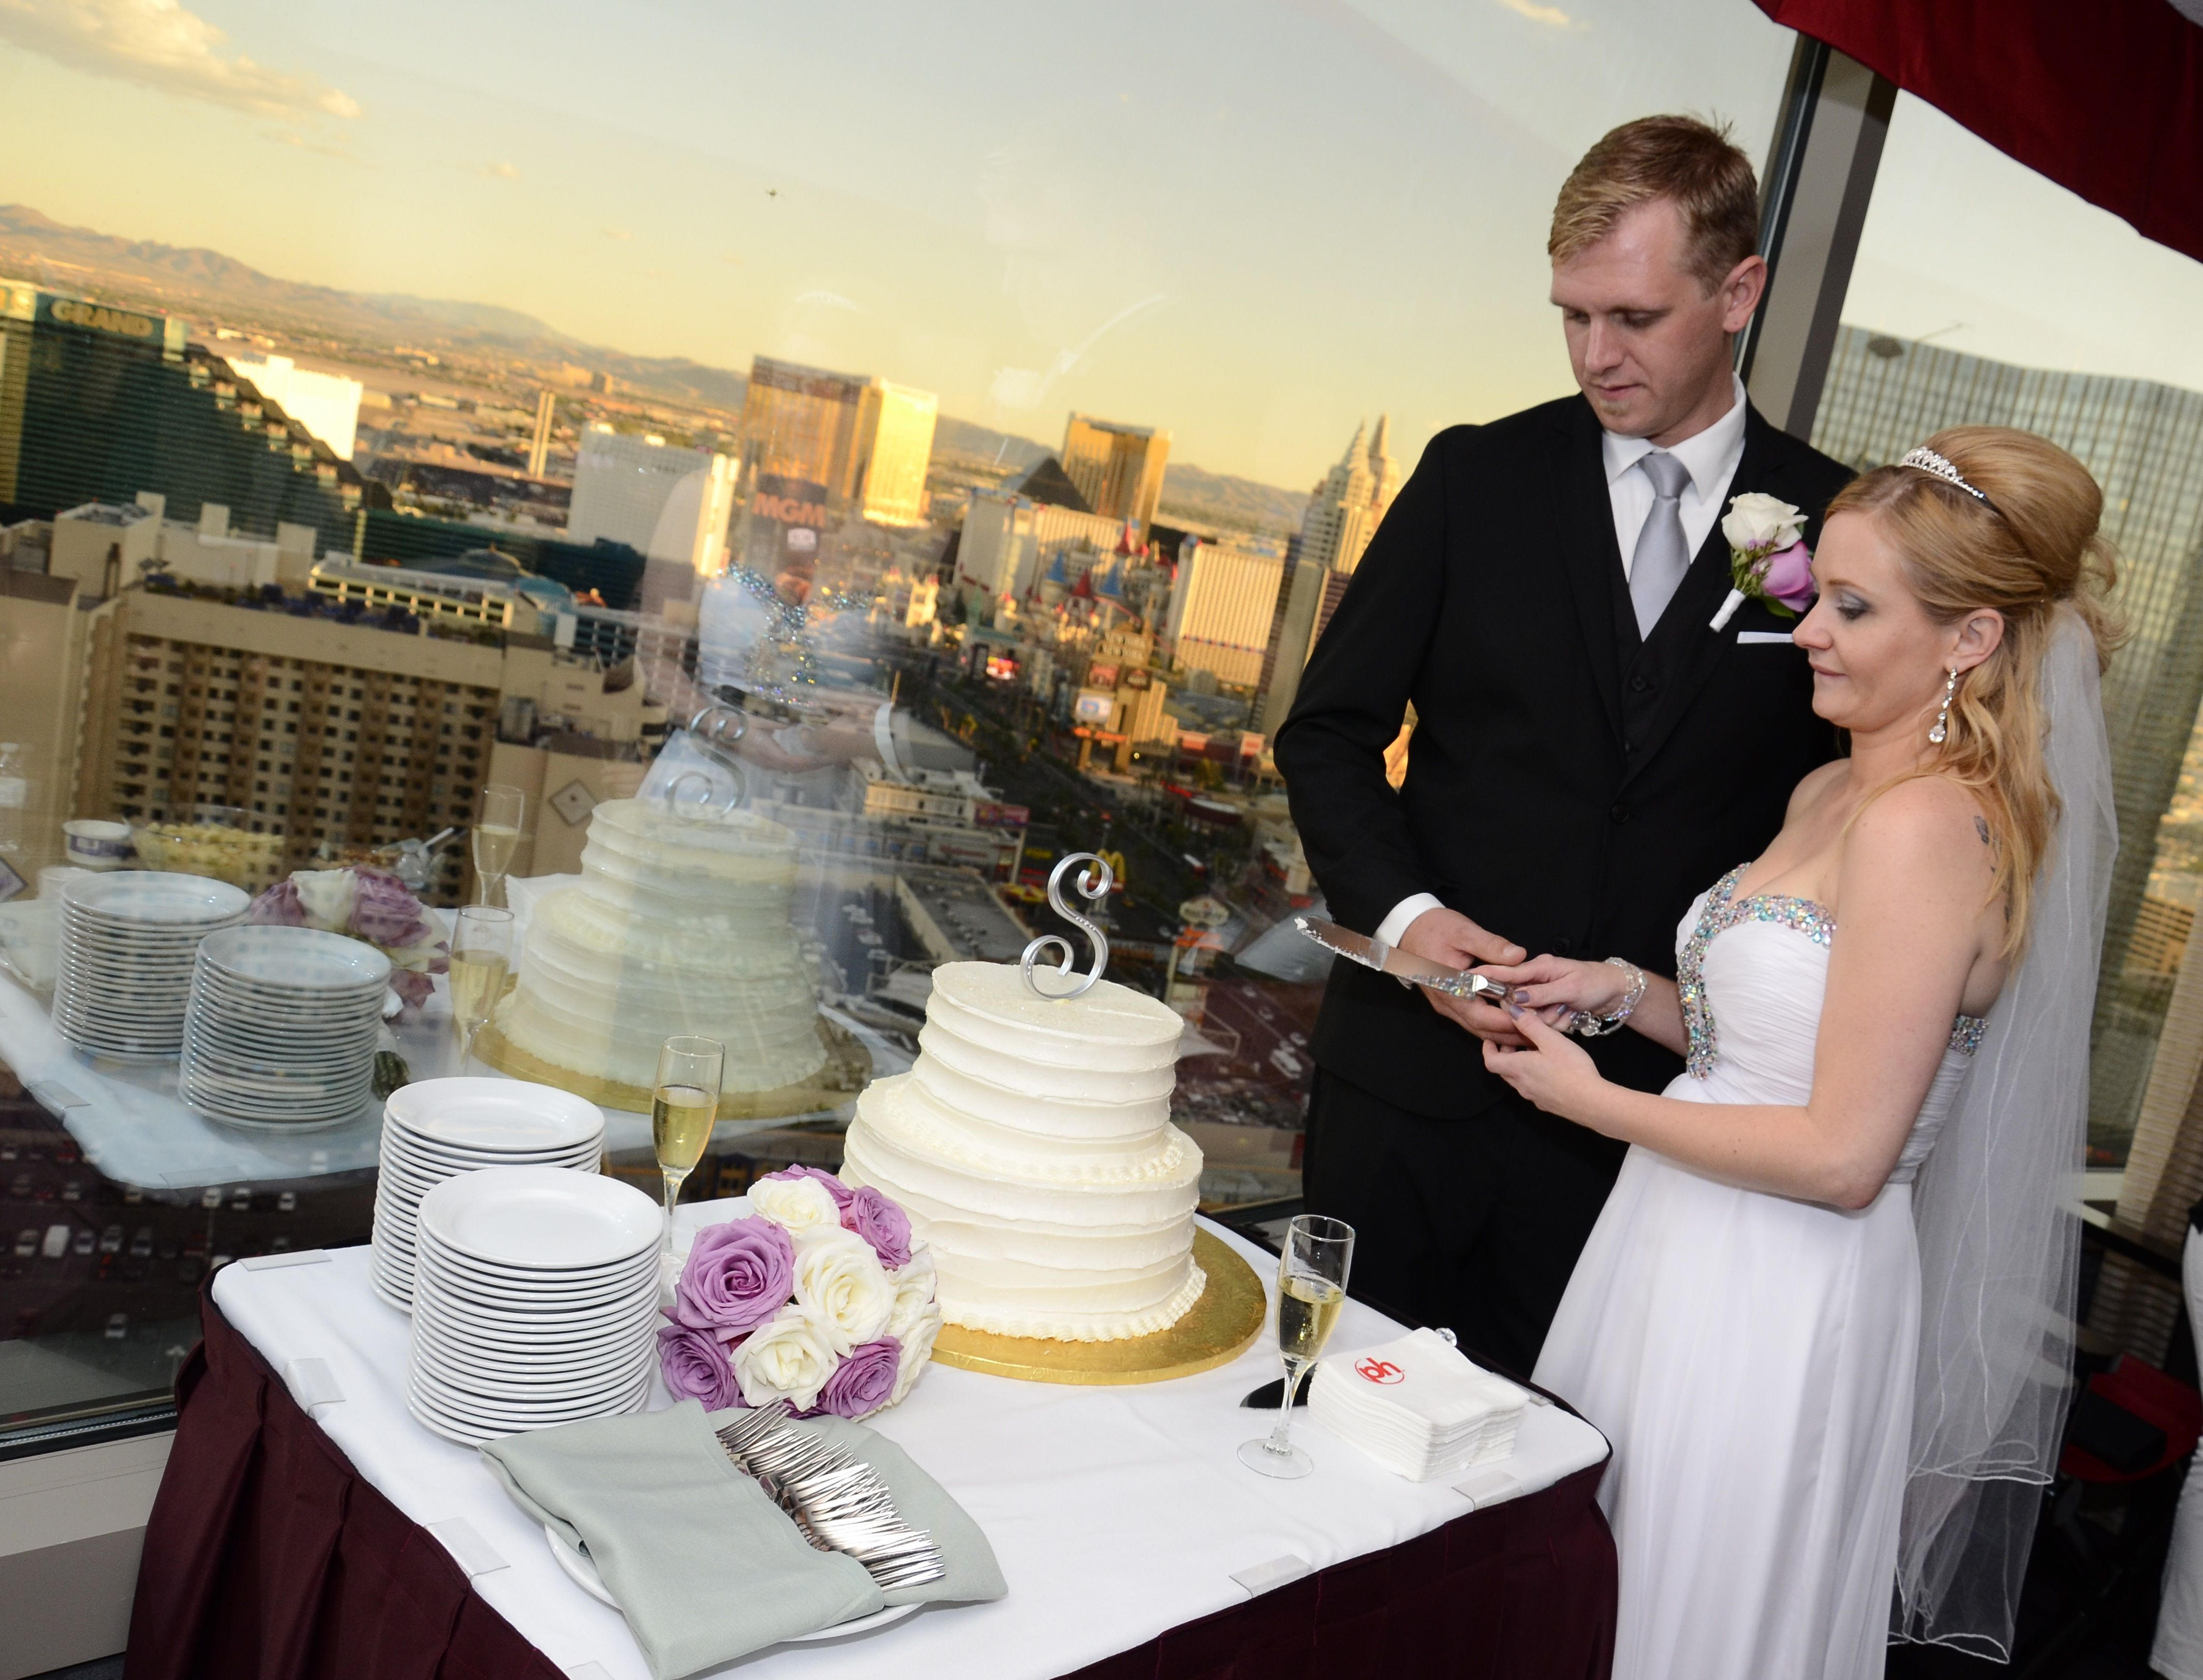 All Inclusive Wedding Package With In Suite Reception The Chapel At Planet Hollywood Planet Hollywood